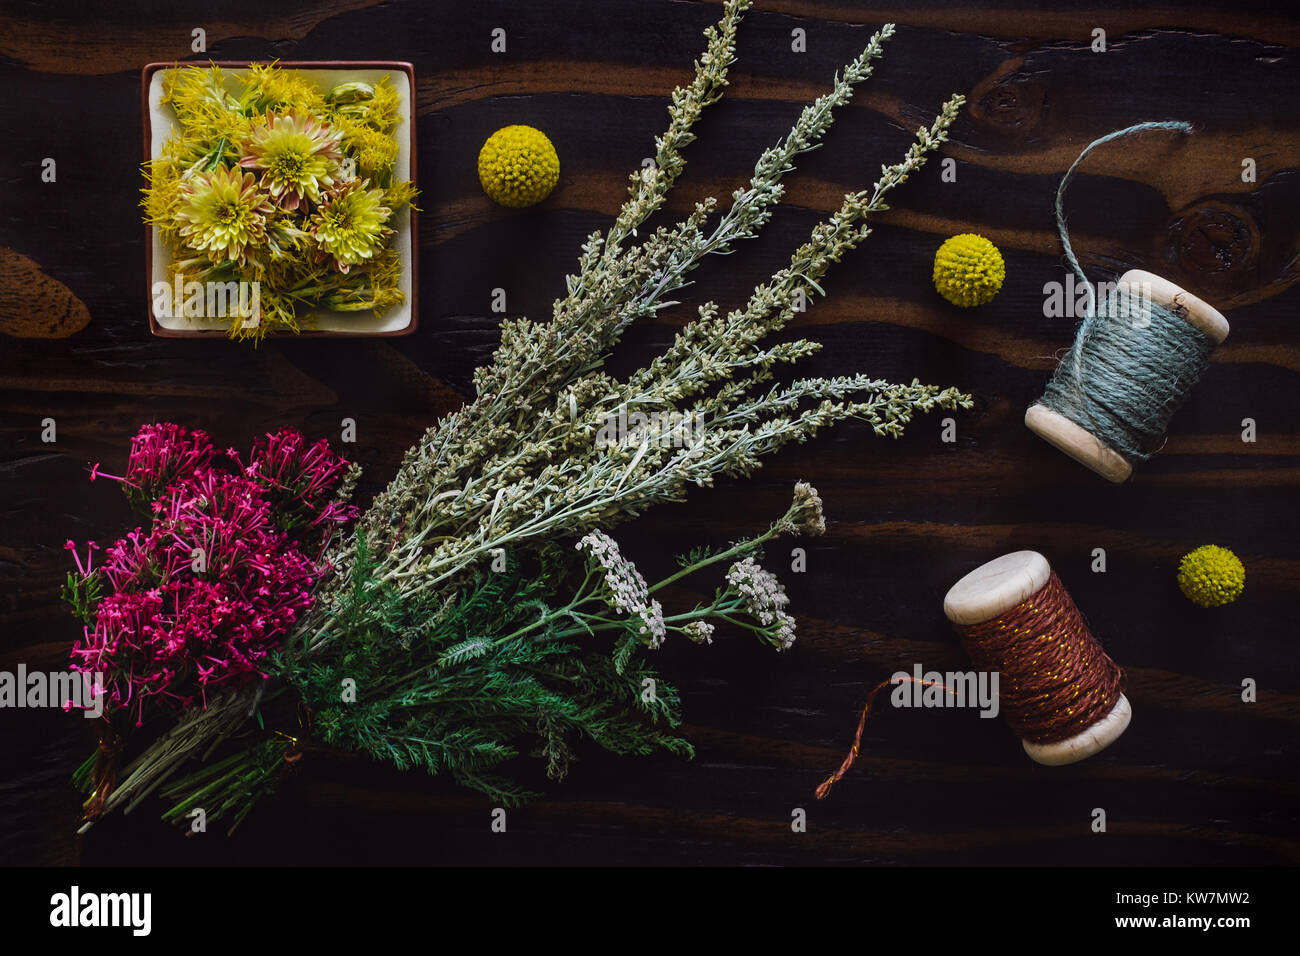 Bouquets of Yarrow, Sage and Native Flora with String - Stock Image